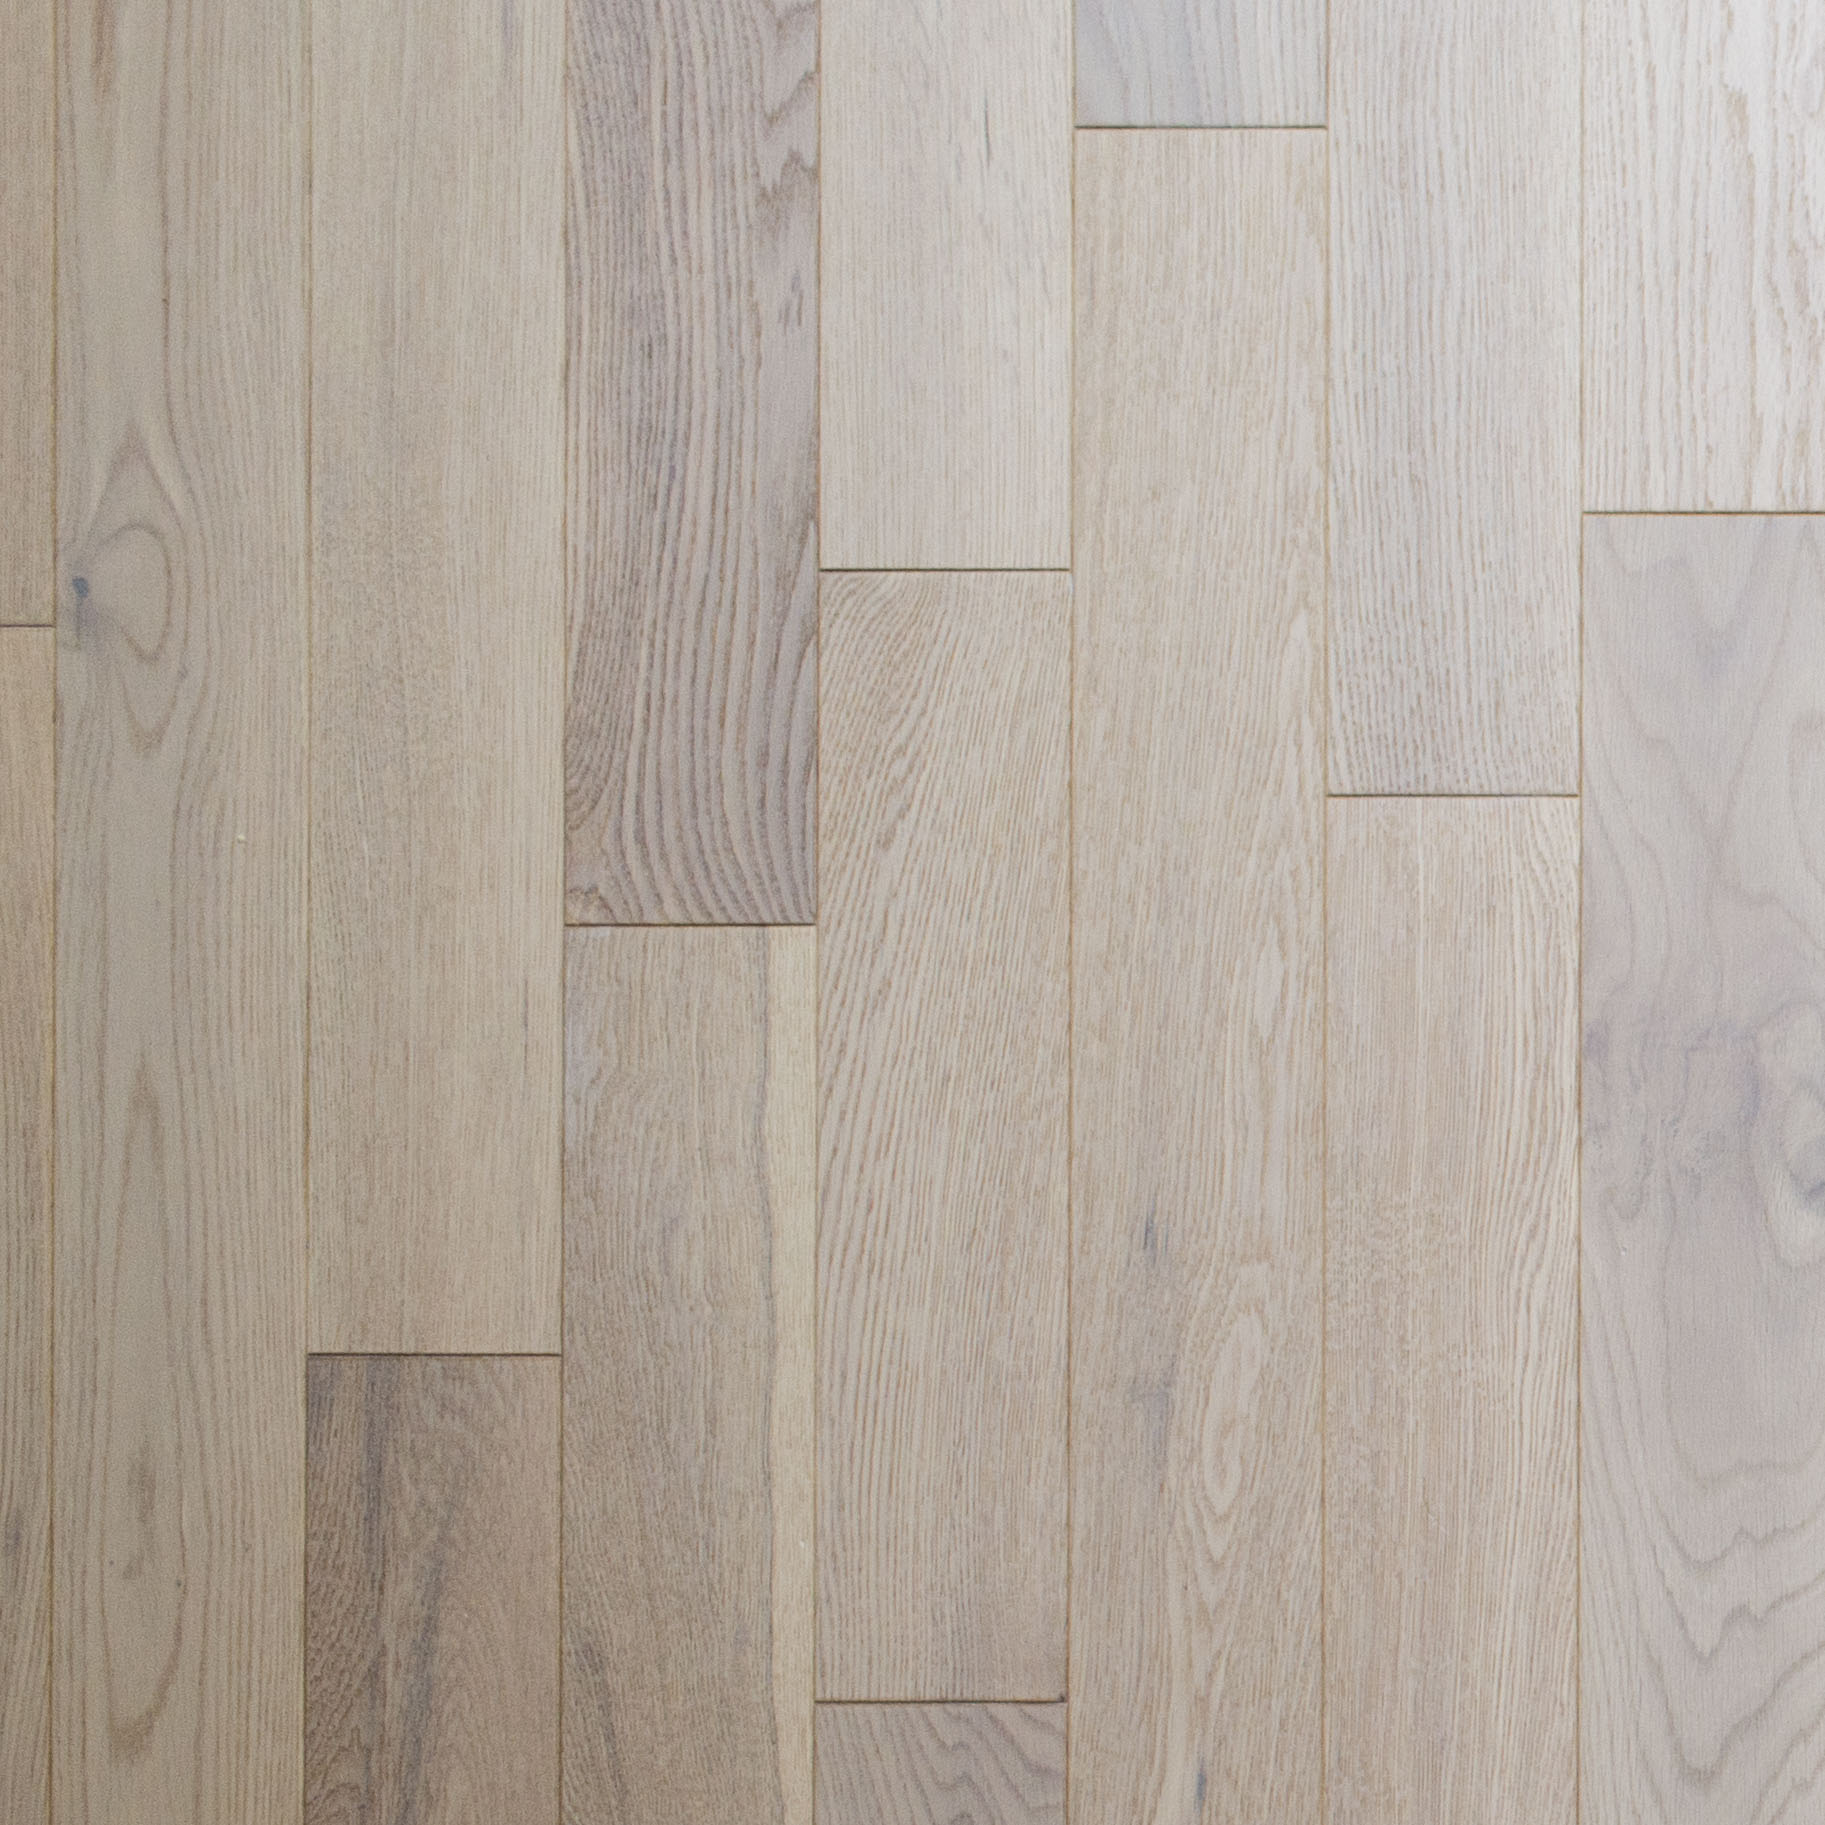 Kraus Flooring Rocky Mountain Oak engineered hardwood